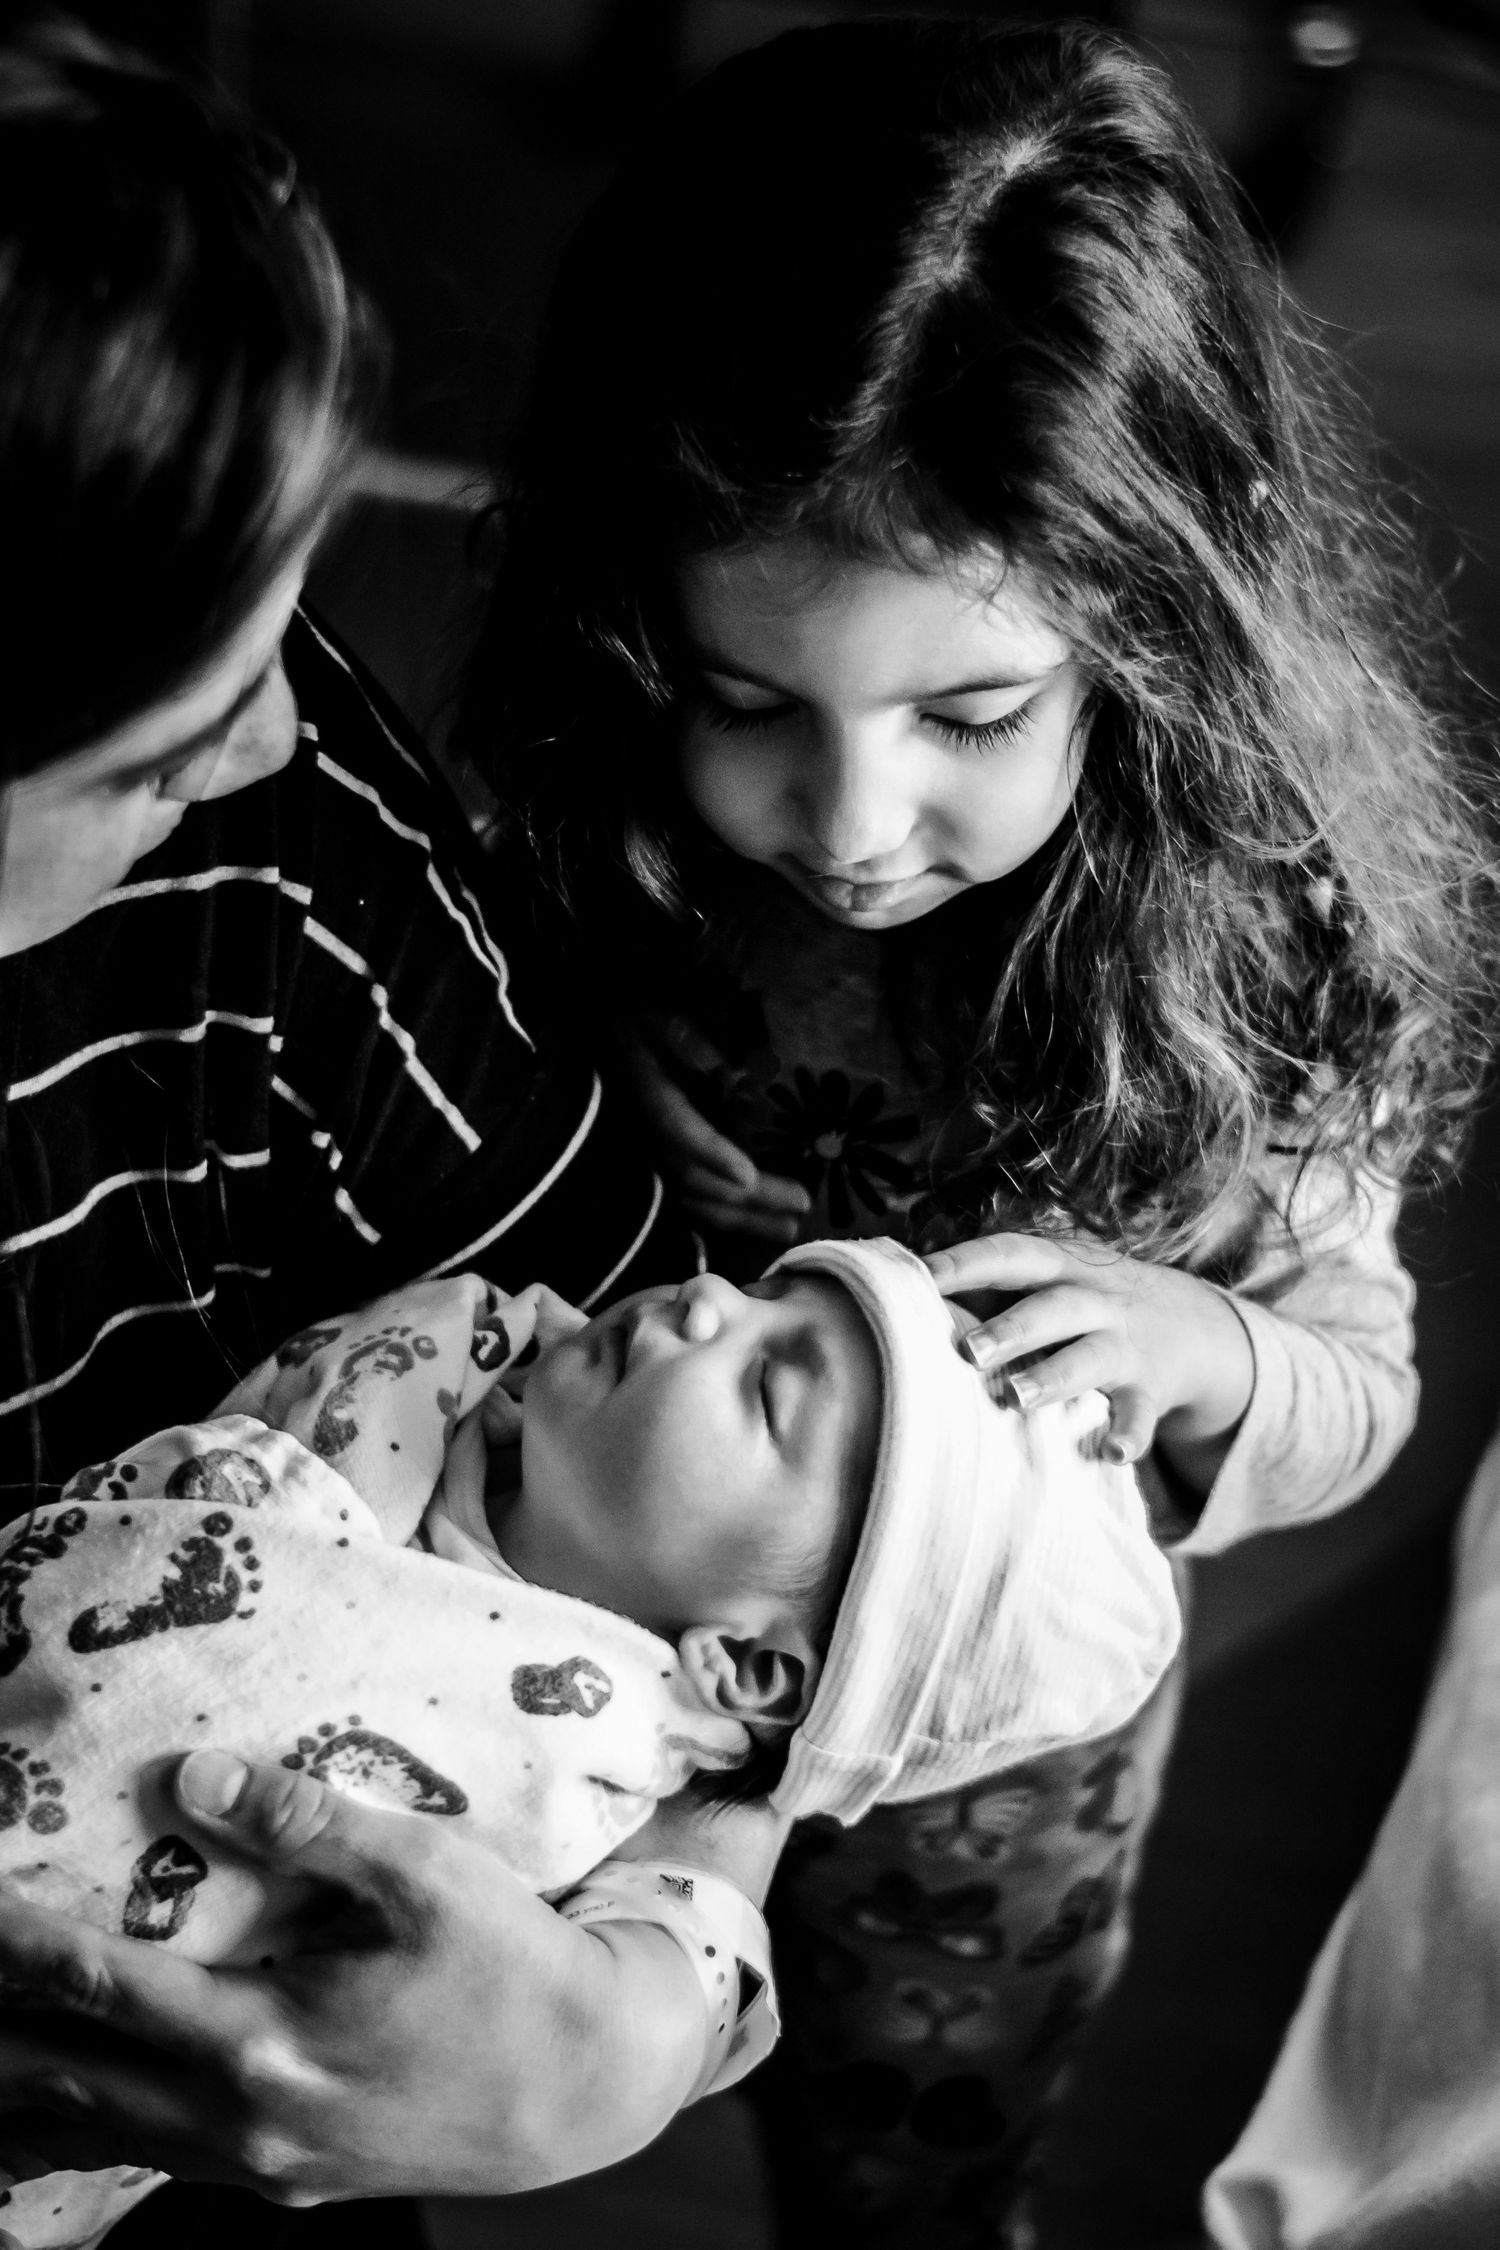 Big sister meeting her new baby sister during their Sibling visit session in Sioux City, IA.